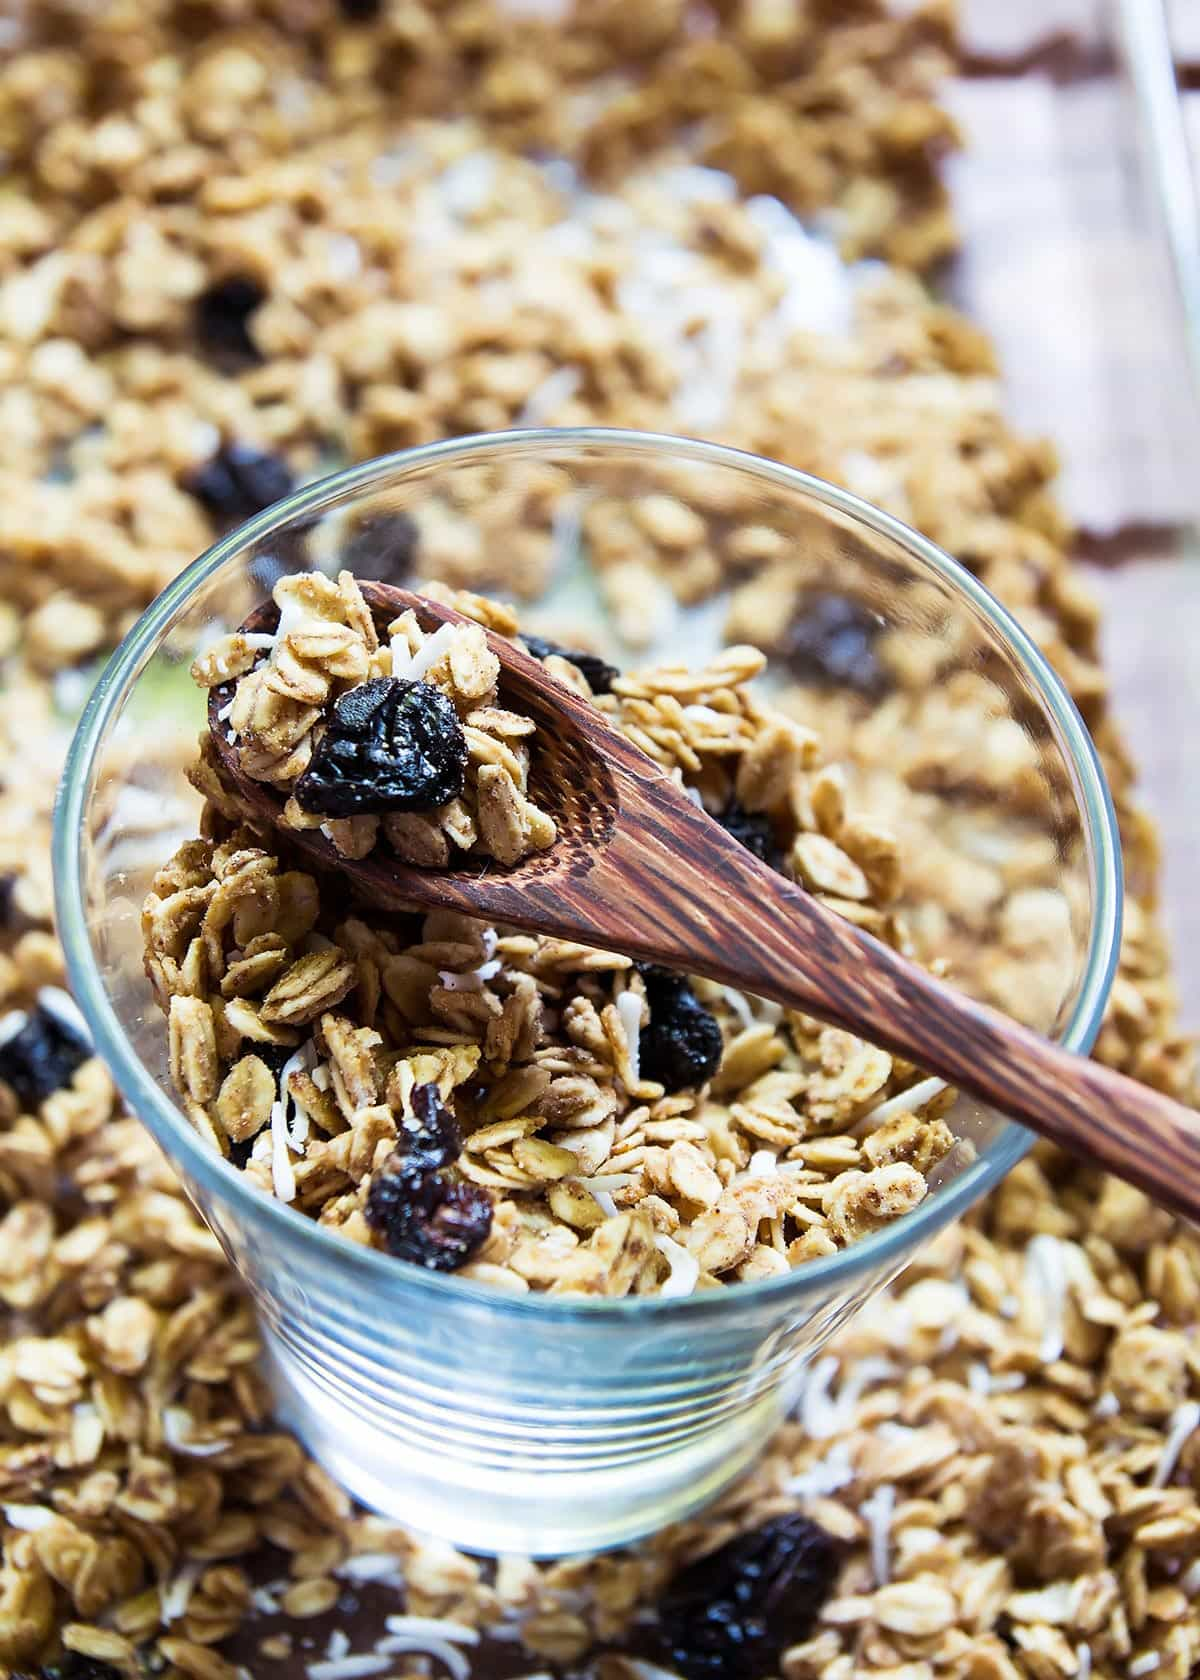 Homemade Granola in a Glass